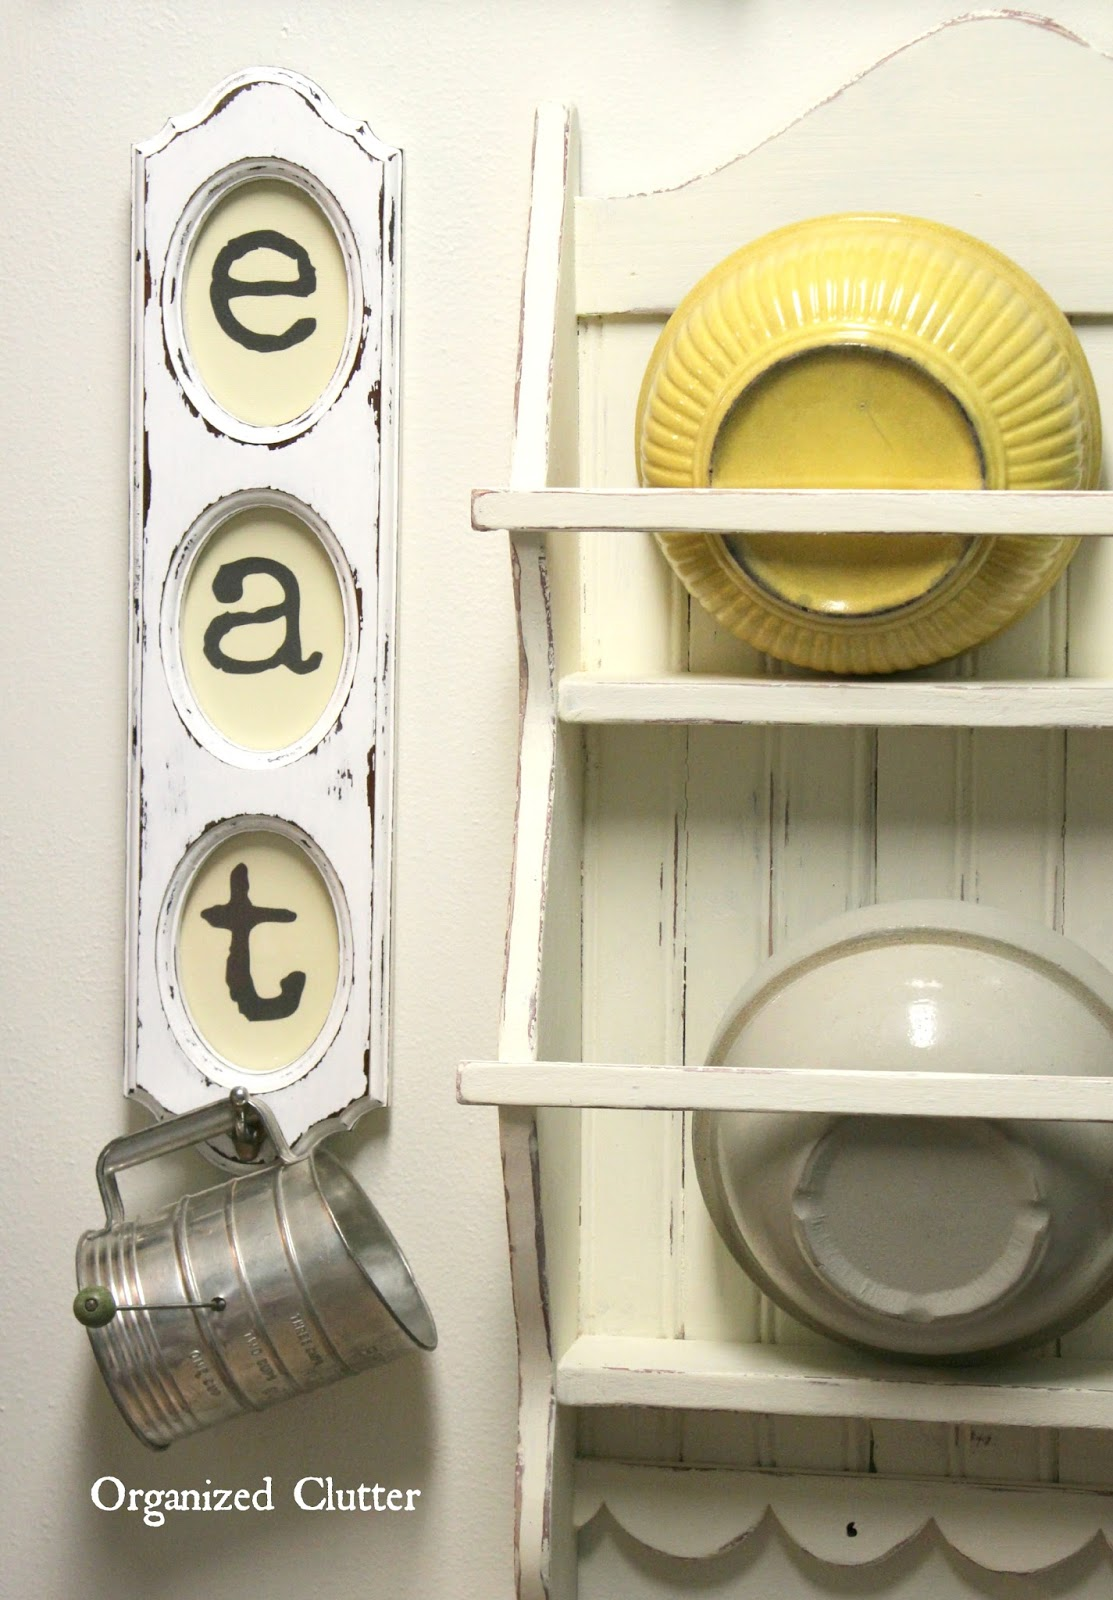 Rummage Sale Frame Upcycled Into Kitchen Fun www.organizedclutter.net